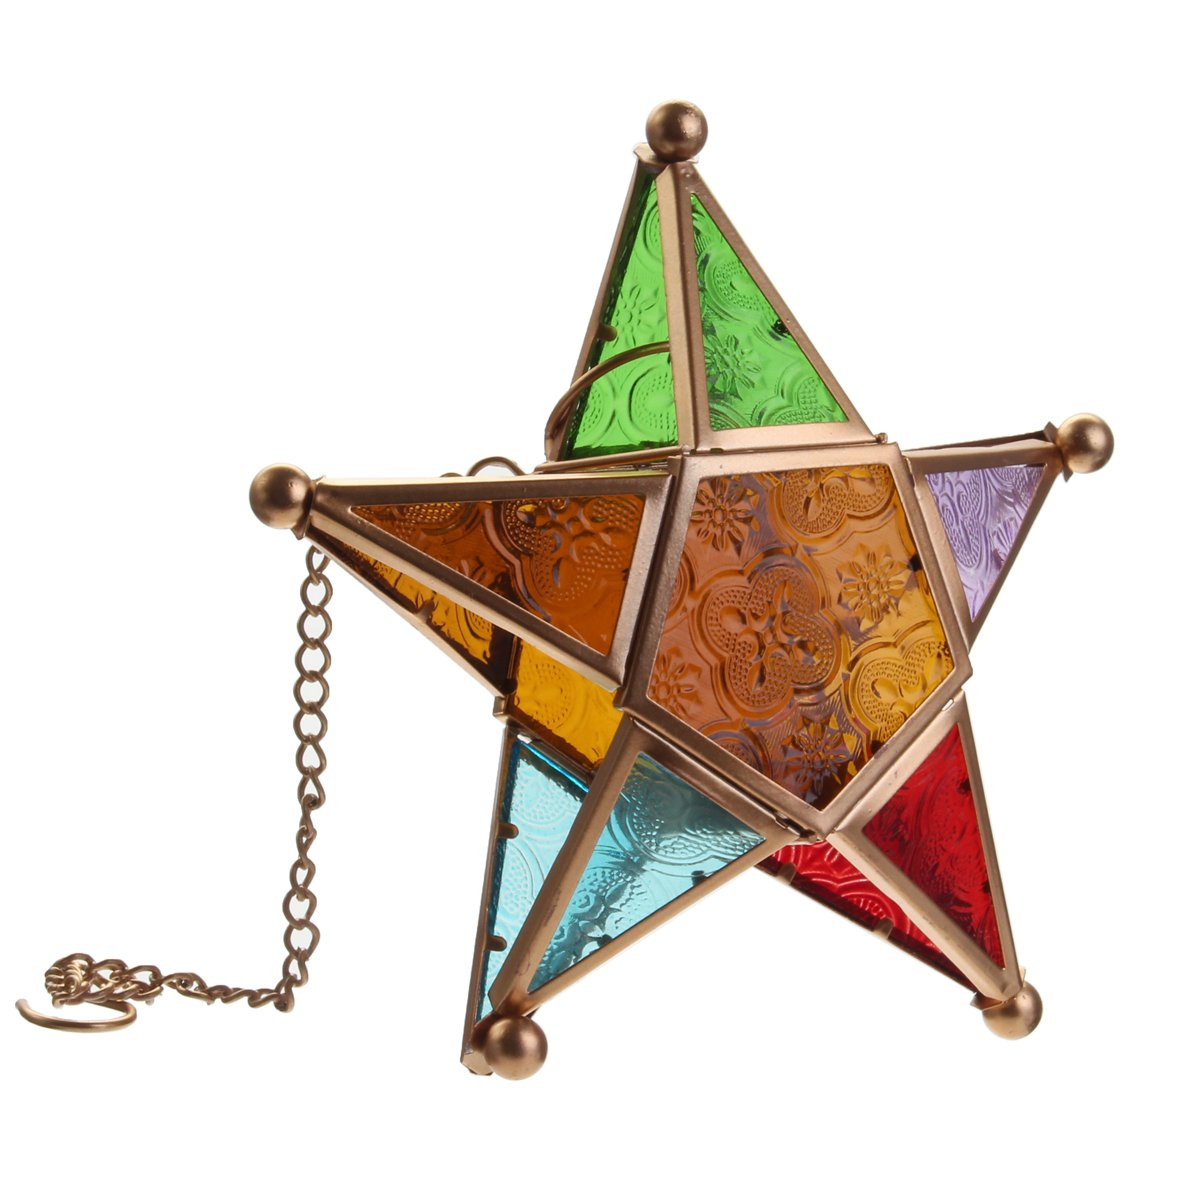 KING DO WAY Hanging Star Lantern Outdoor Pendant Candle Holder Lamp Moroccan Style Glass Tealight Lantern Candle Tray